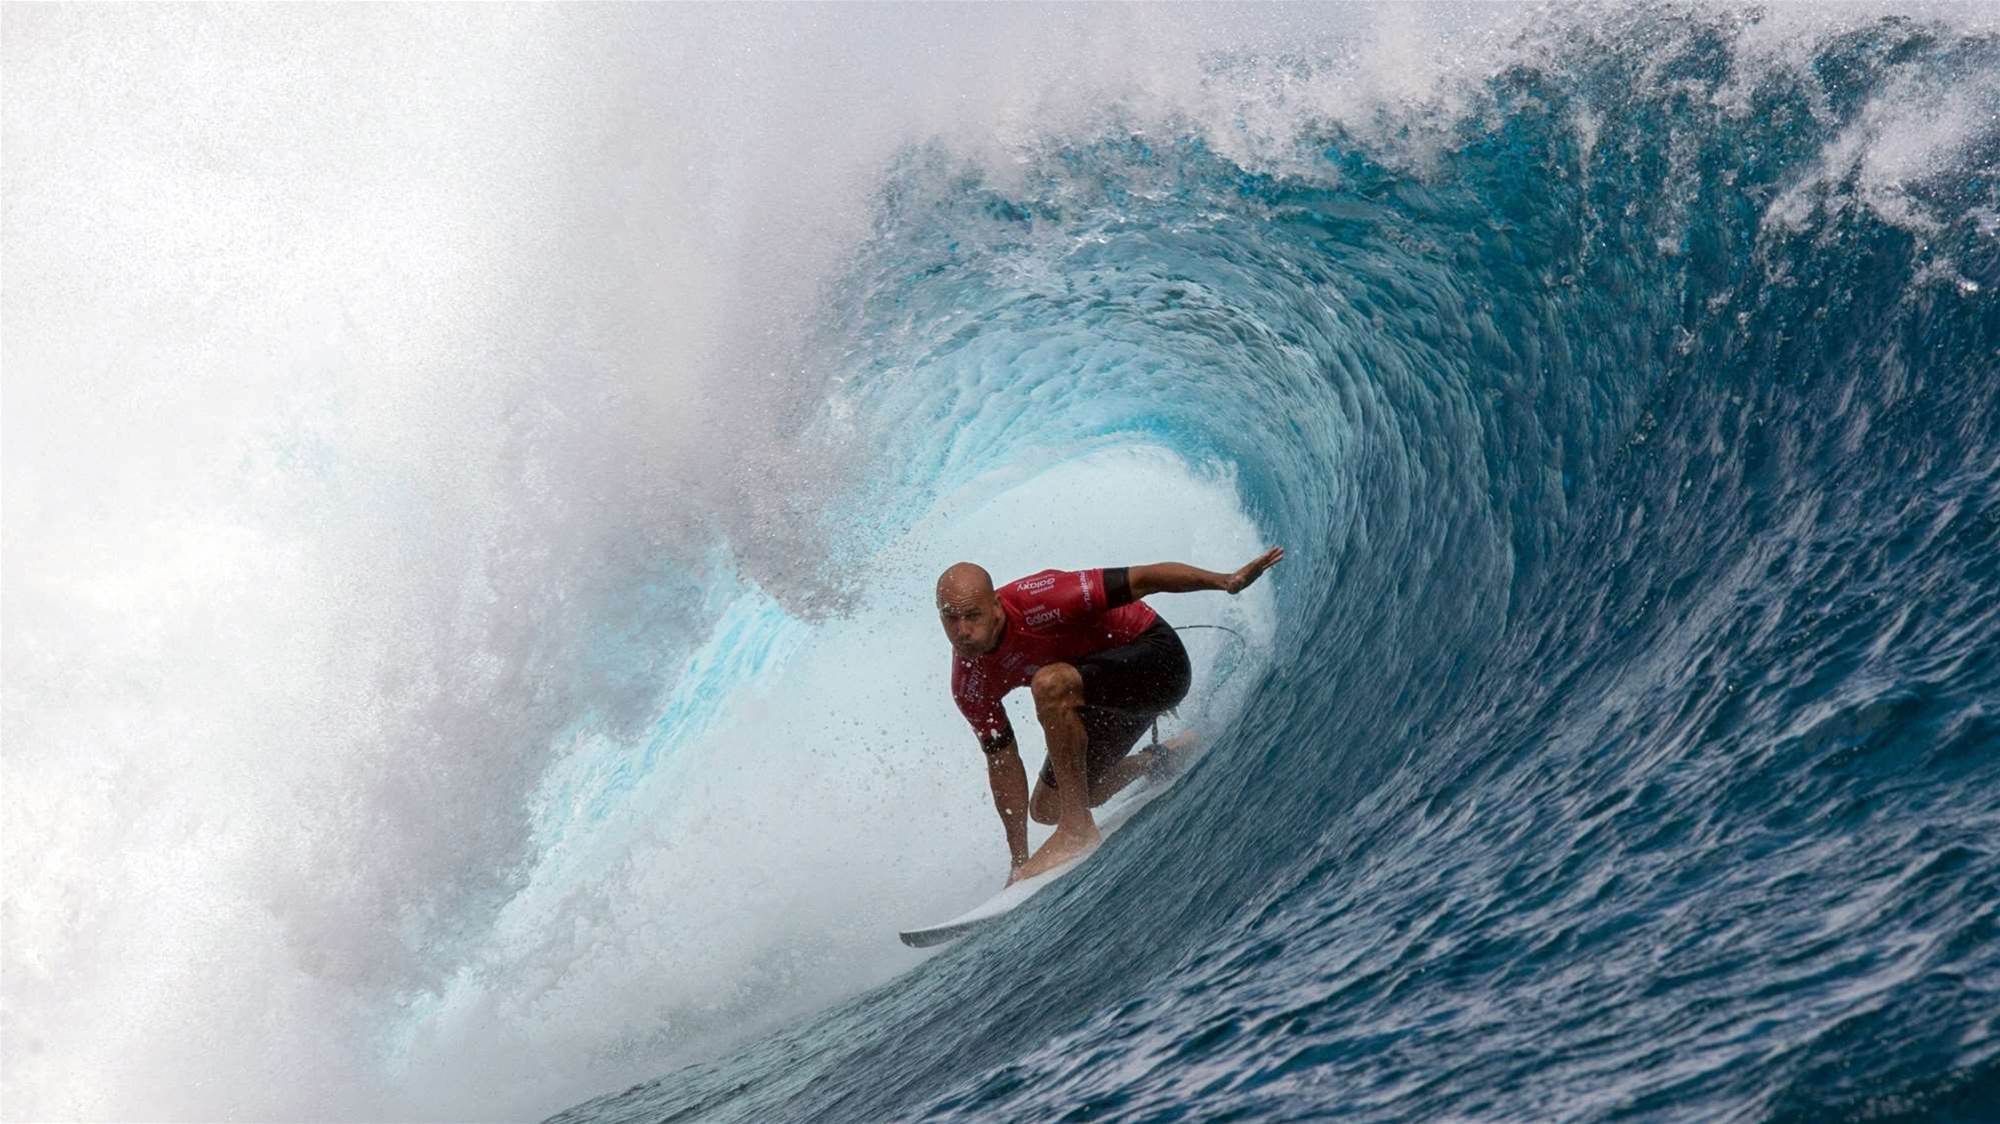 Slater unstoppable in Tahiti